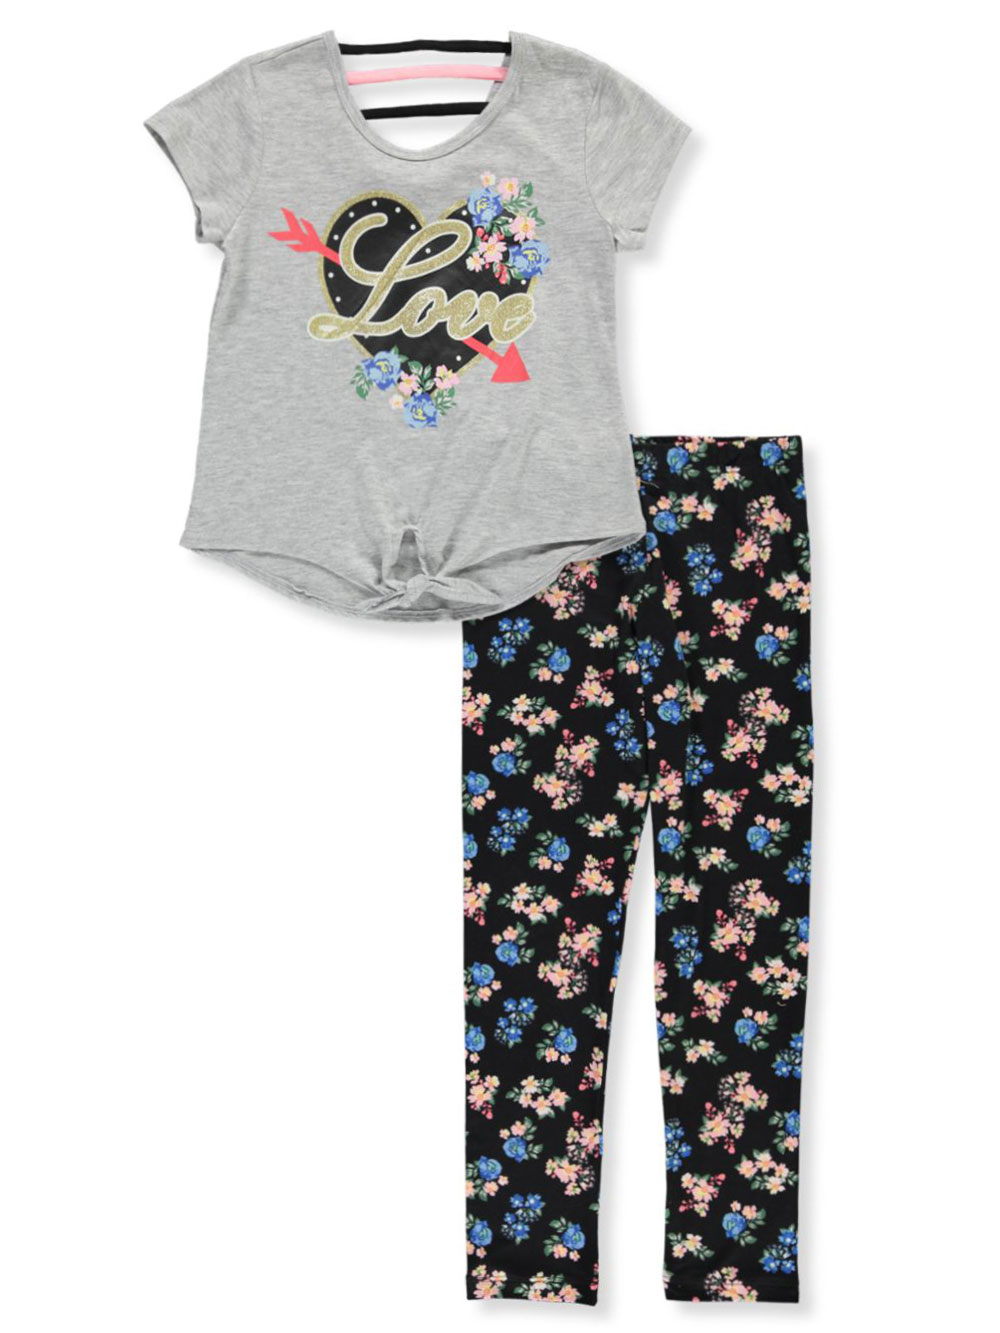 Girls Heather Gray Pant Sets